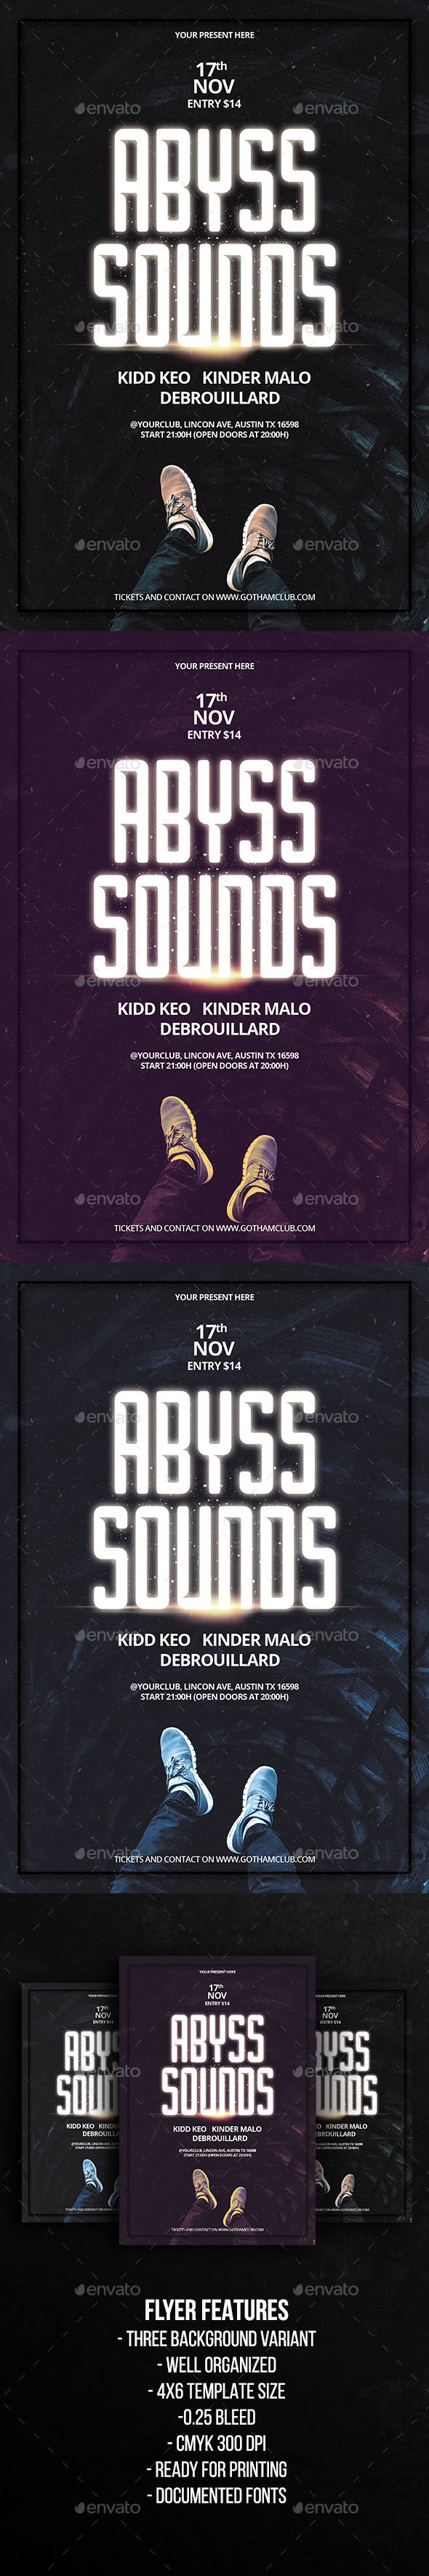 Abyss Sounds Party Flyer Template - Clubs & Parties Events